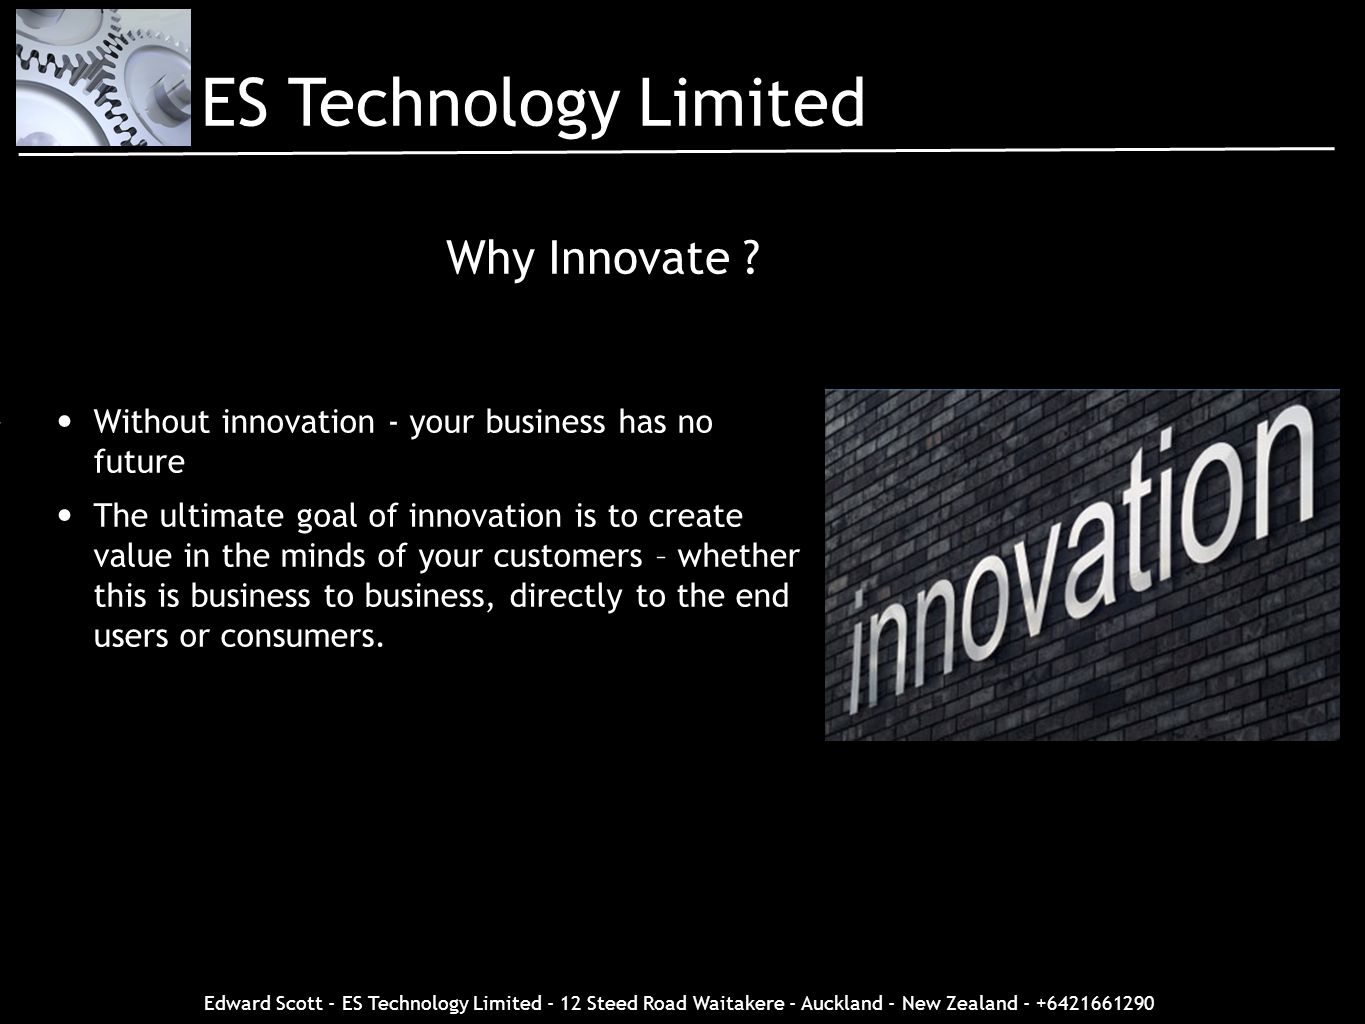 Edward Scott - ES Technology Limited - 12 Steed Road Waitakere - Auckland - New Zealand - +6421661290 Why Innovate ? Without innovation - your busines